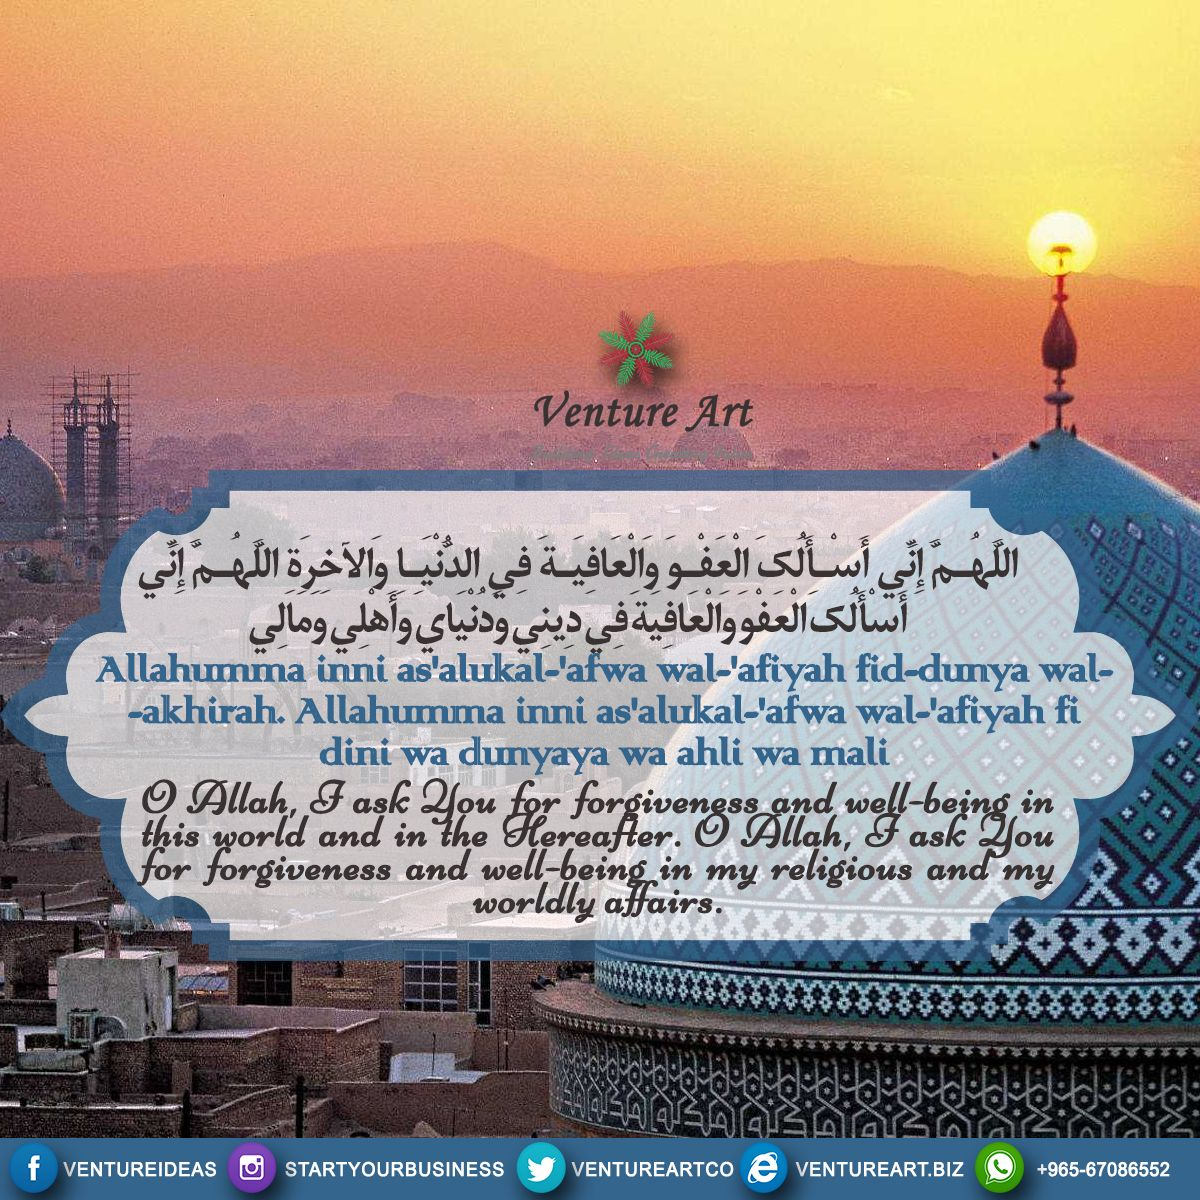 O Allah, I ask You for forgiveness and well being in this